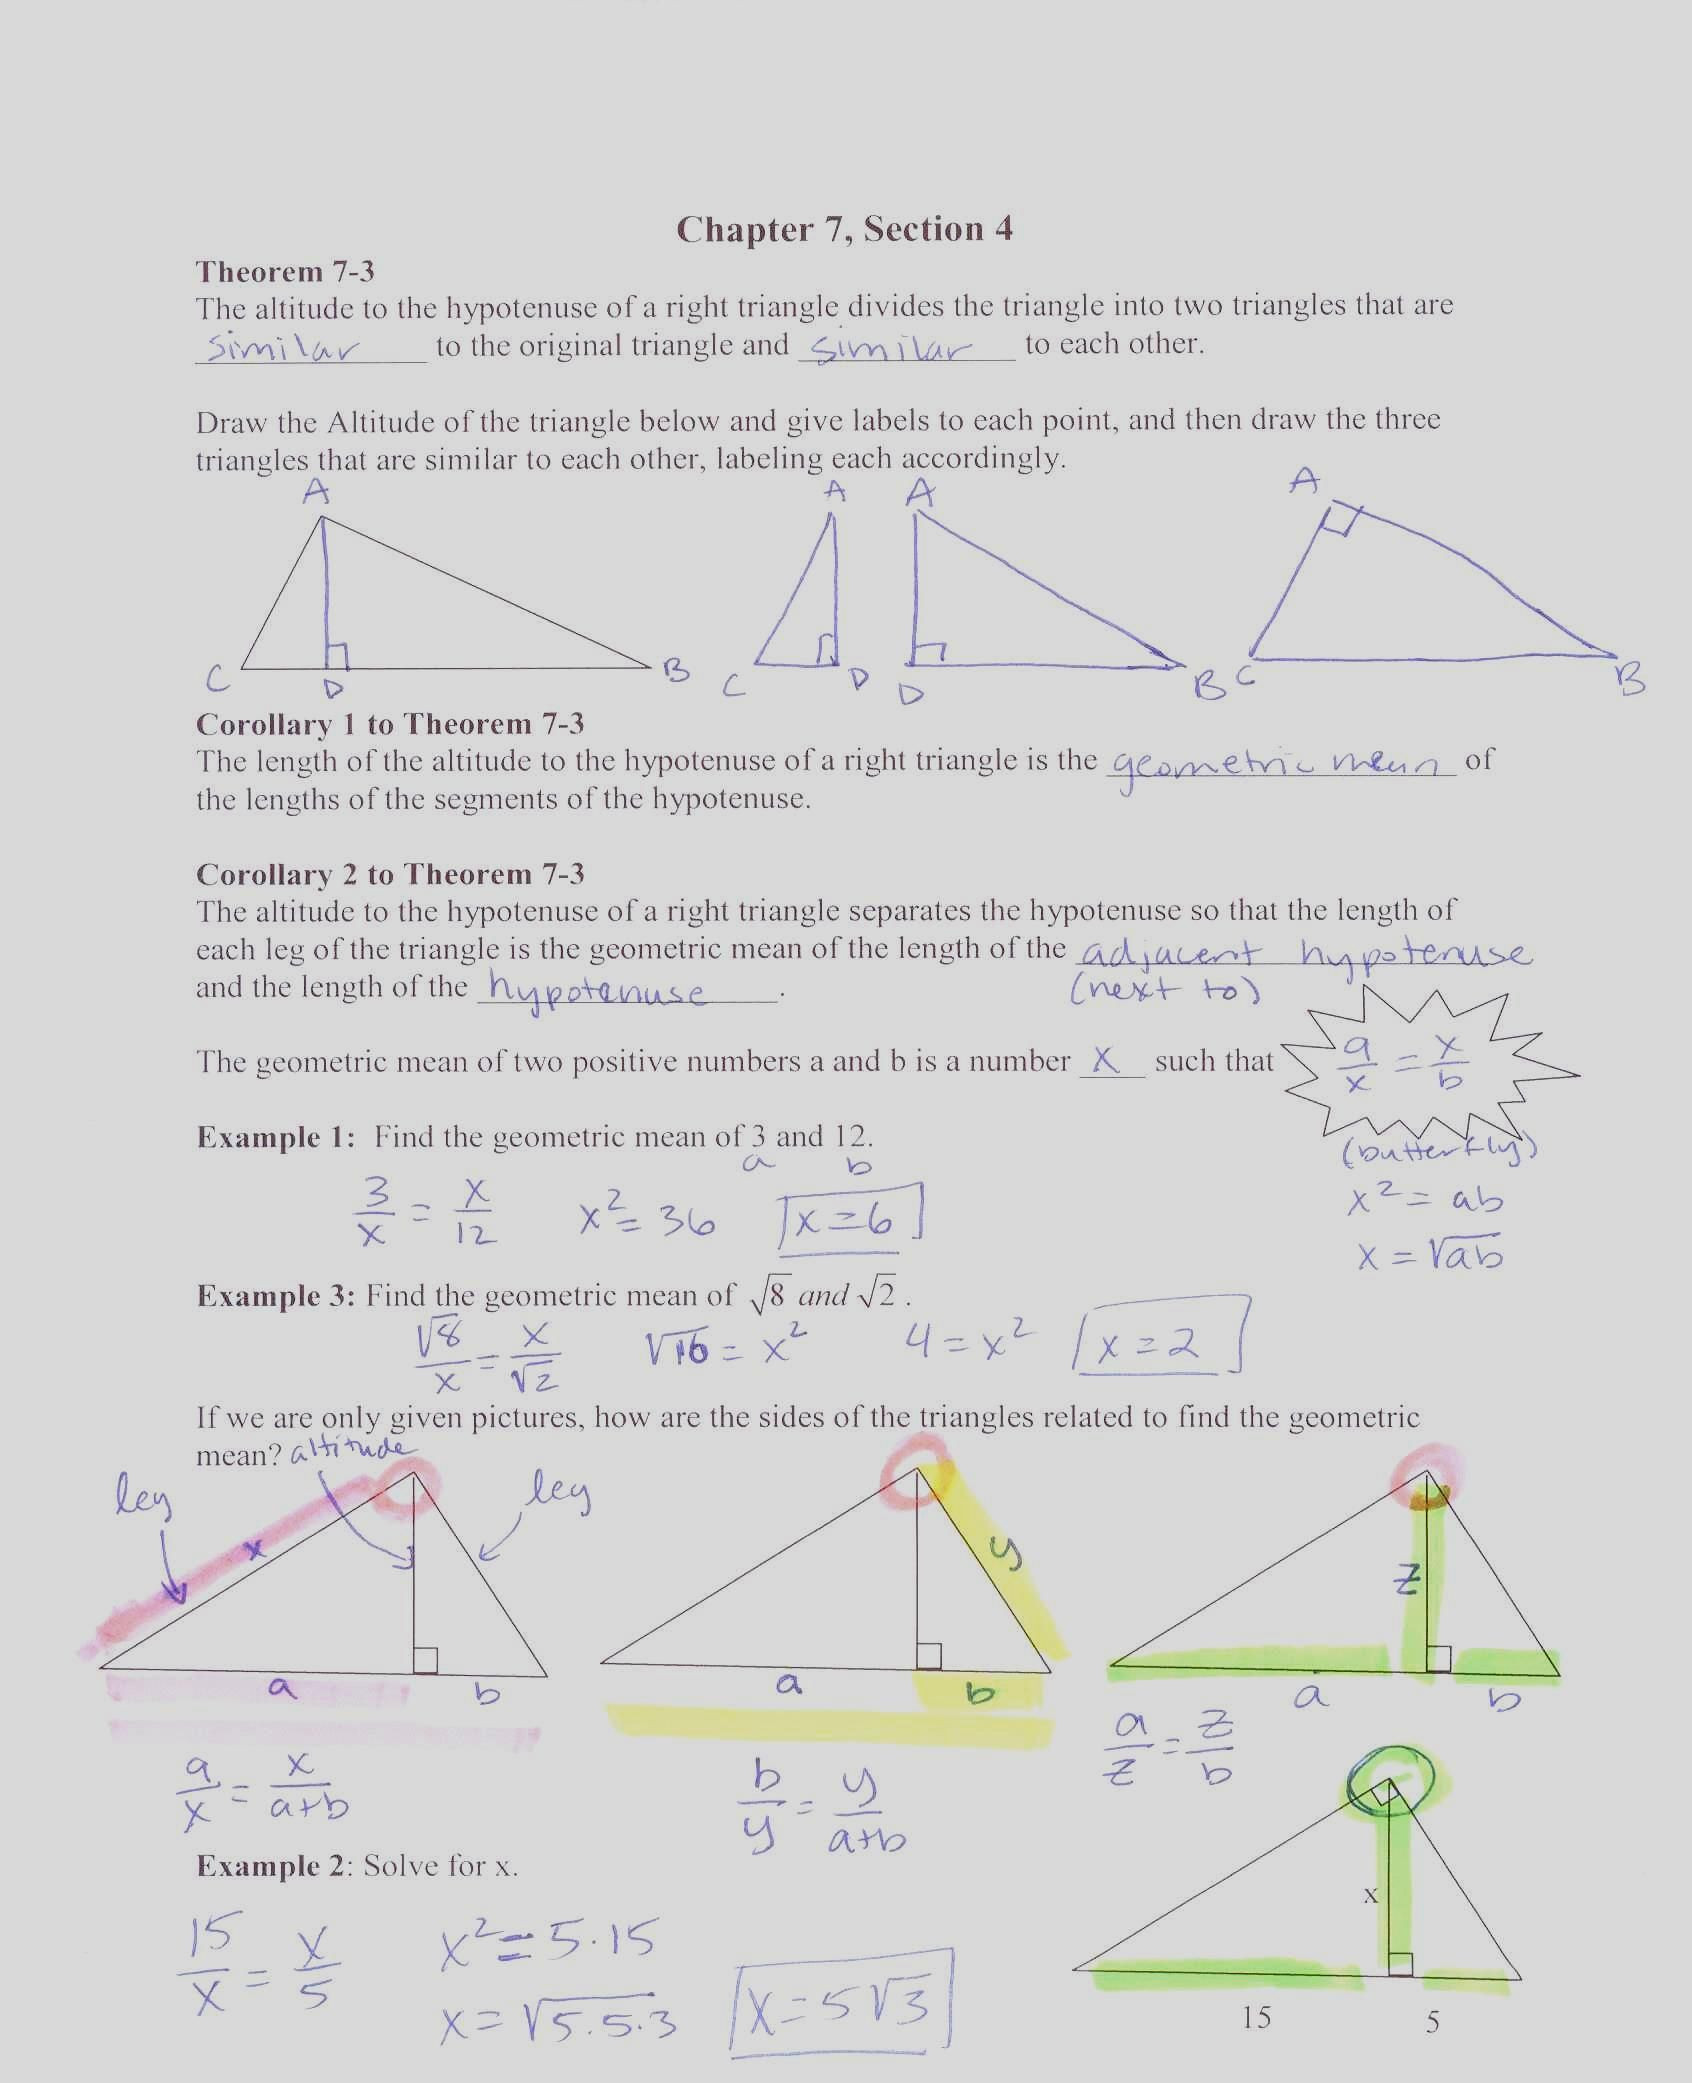 similar figures worksheet answer key or high school geometry worksheets with answers fresh angle of similar figures worksheet answer key